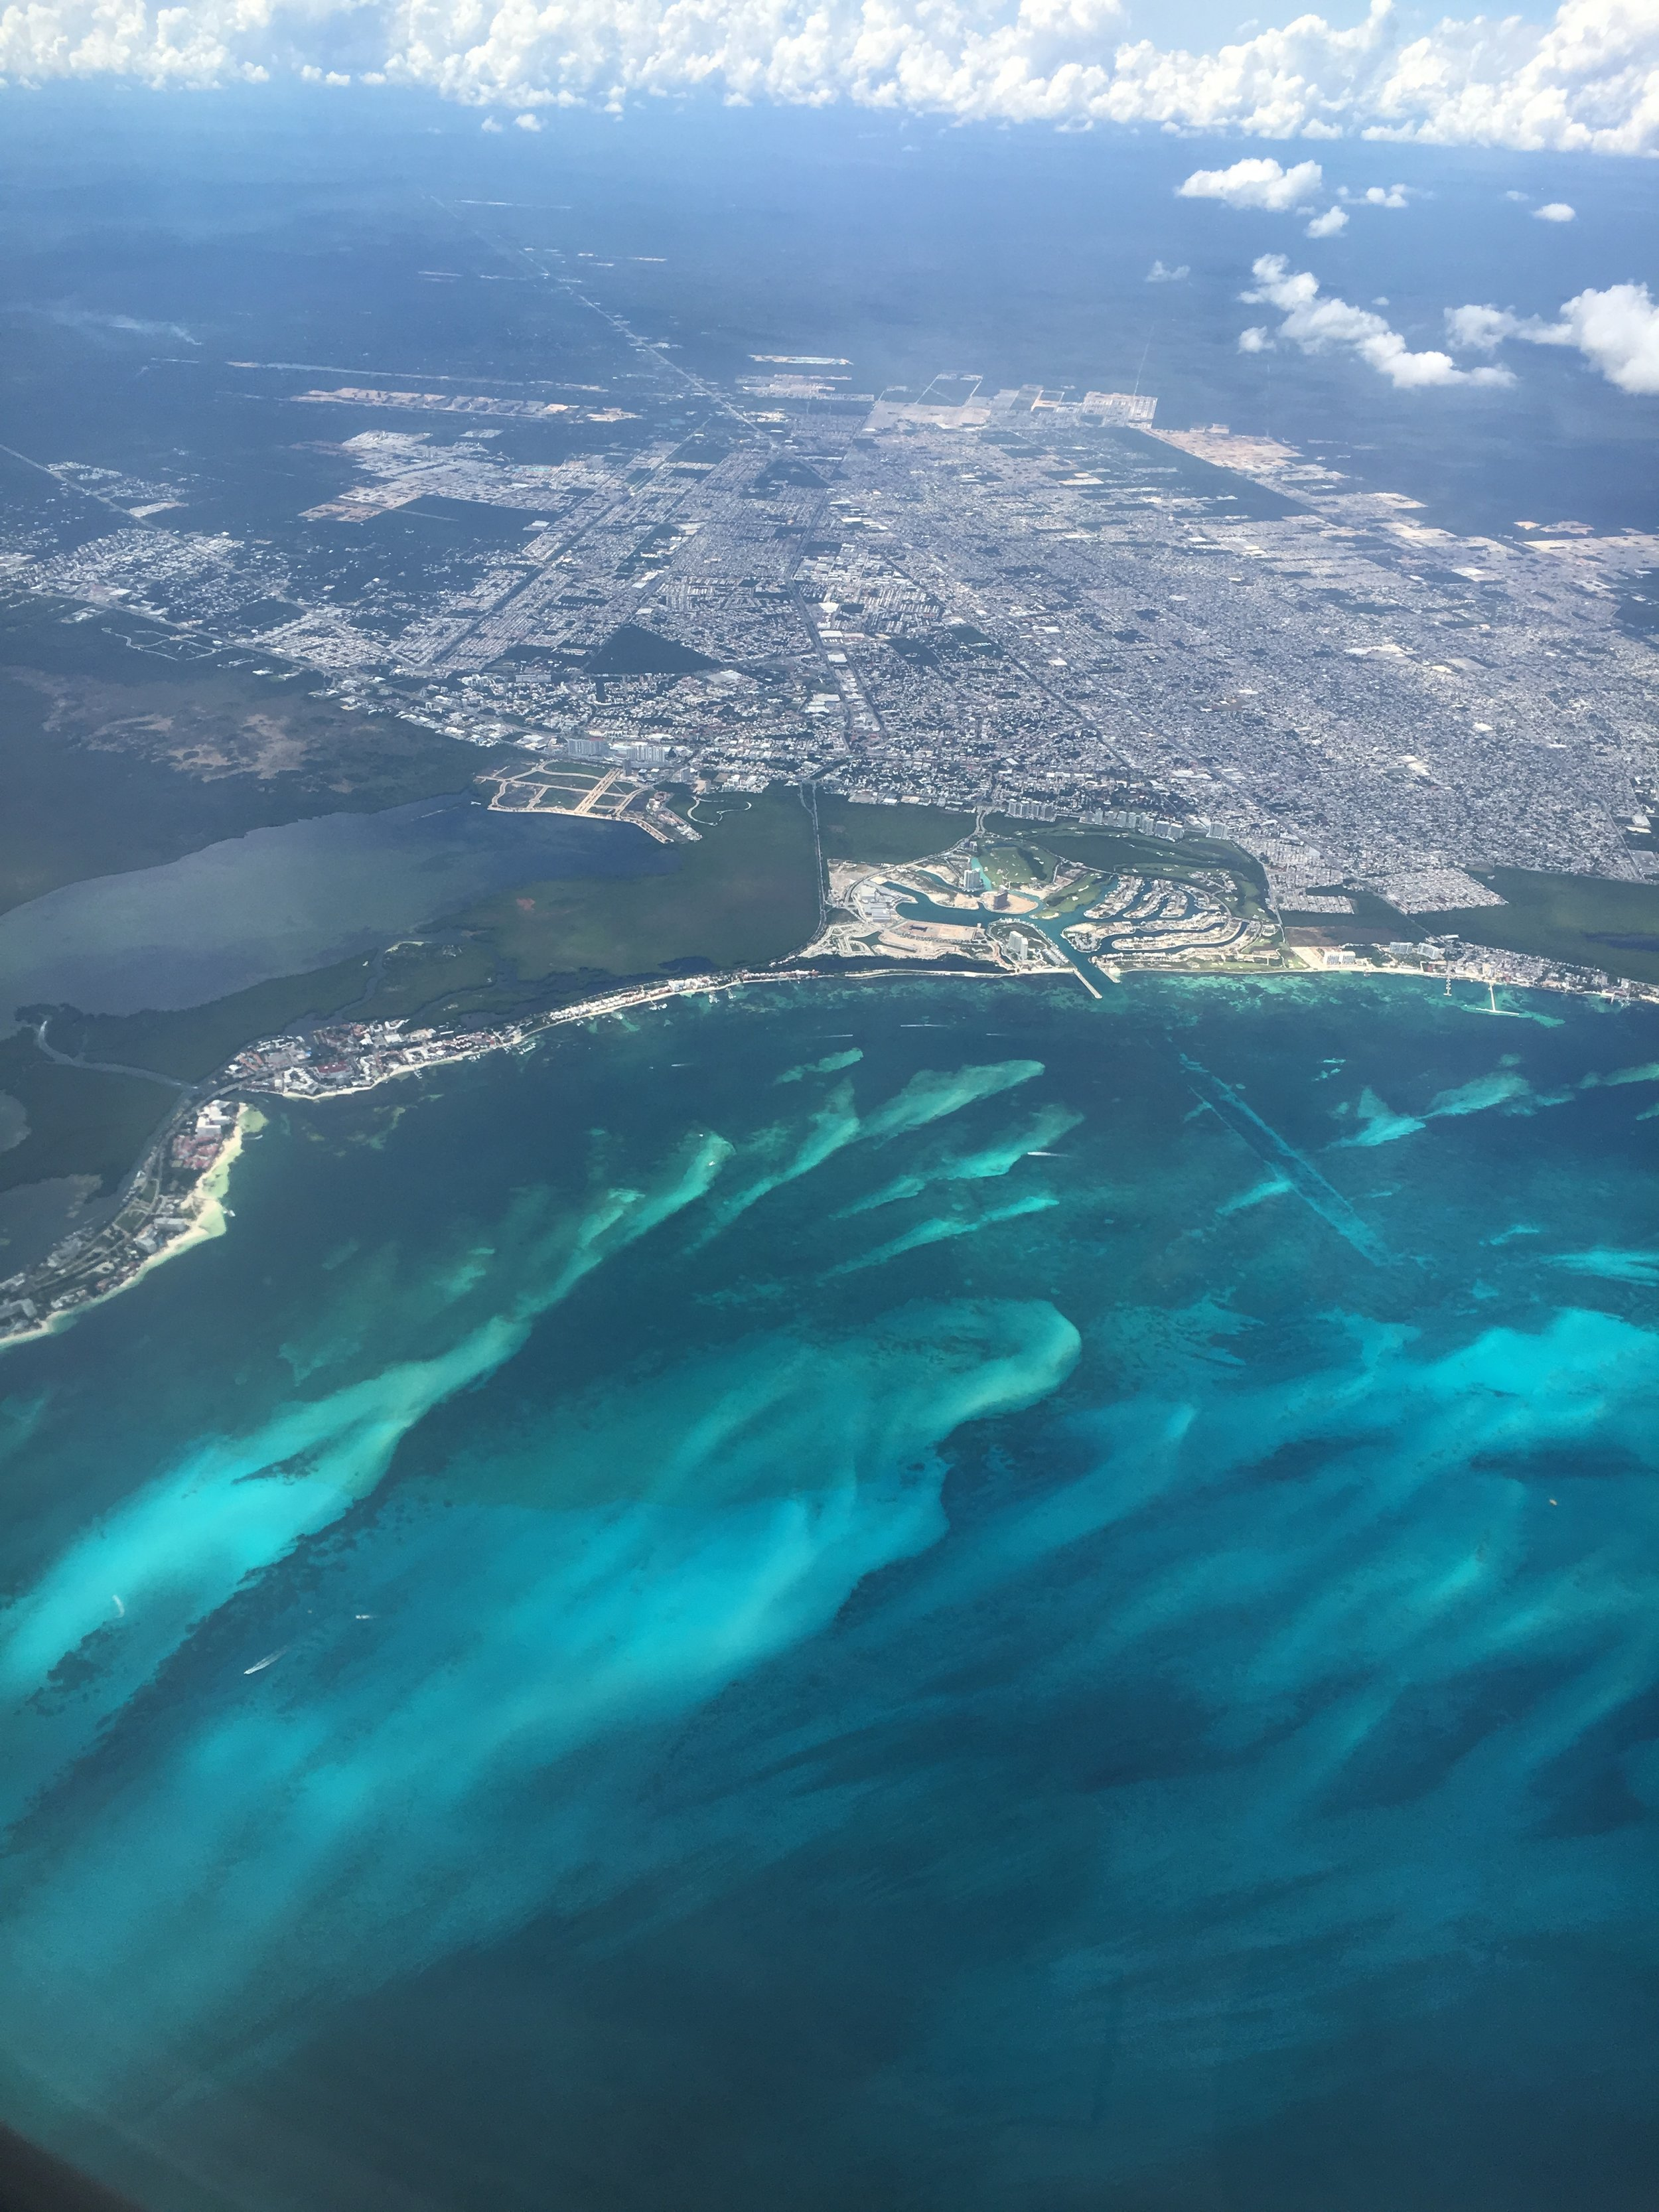 photograph-from-airplane-over-playa-del-carmen-mexico